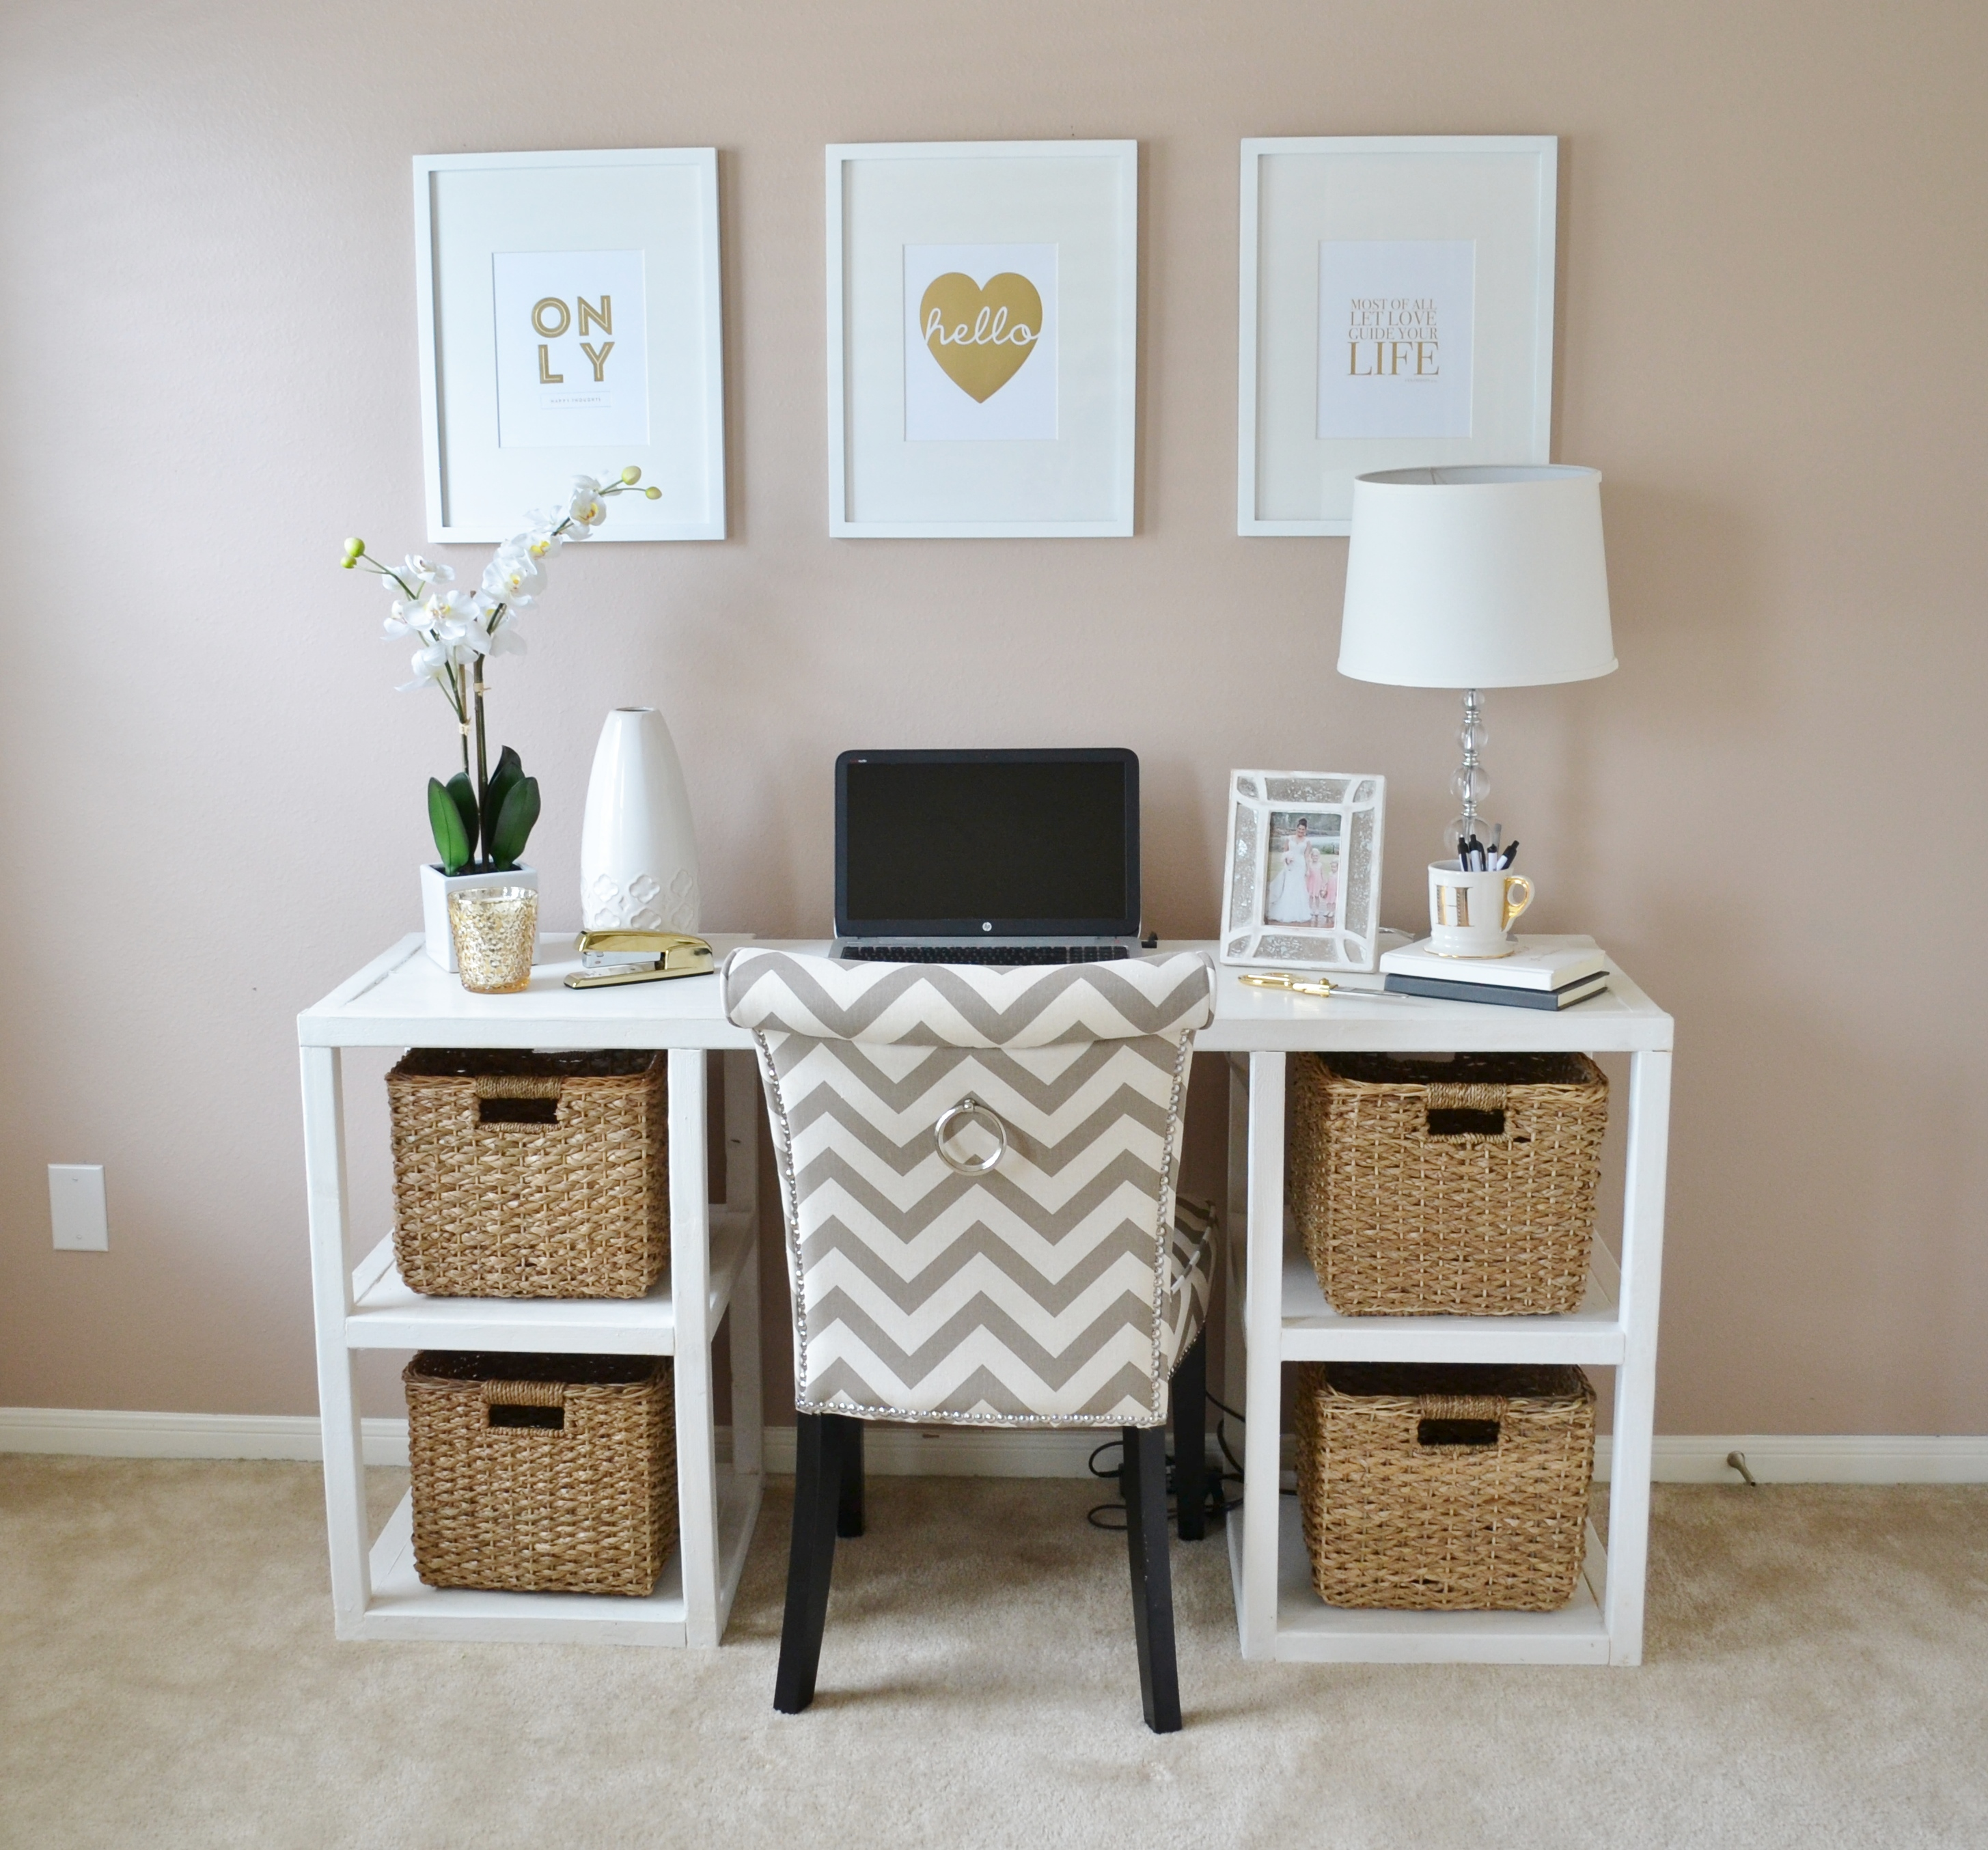 adorabl working picture frame target design on crem wall above desk with storage bin and white